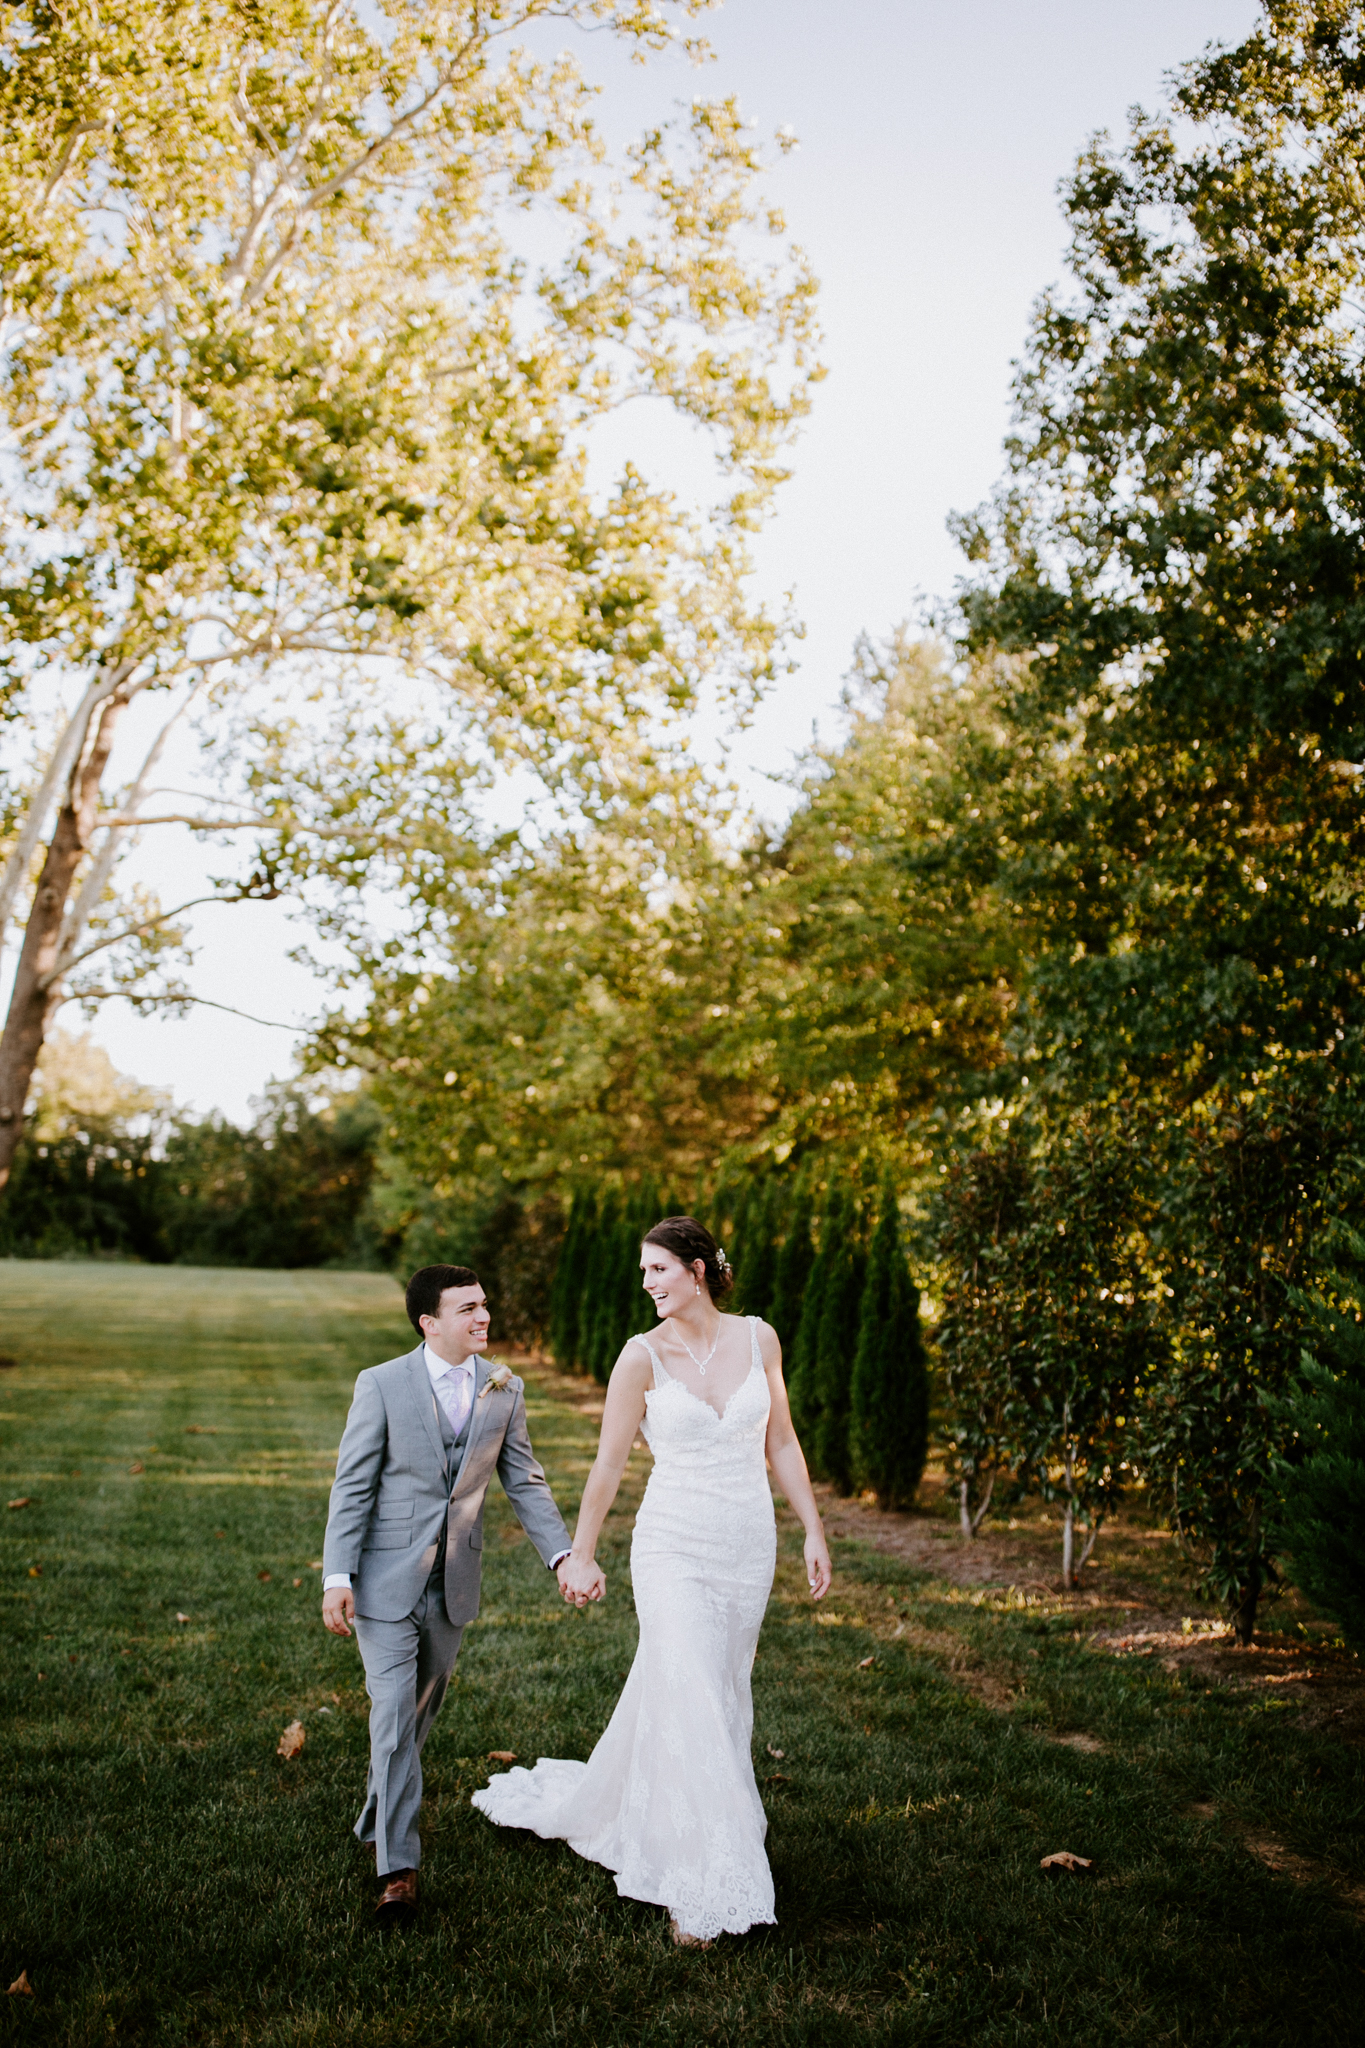 """Sarah has a true kindness and passion for making you feel incredibly beautiful and special through her photos. We recommend her 1000% to anyone who is looking for a photographer! She captured our wedding so beautifully and uniquely. Her heart and attitude is contagious and will leave you excited to work with her more!""  MEGAN+AJ"